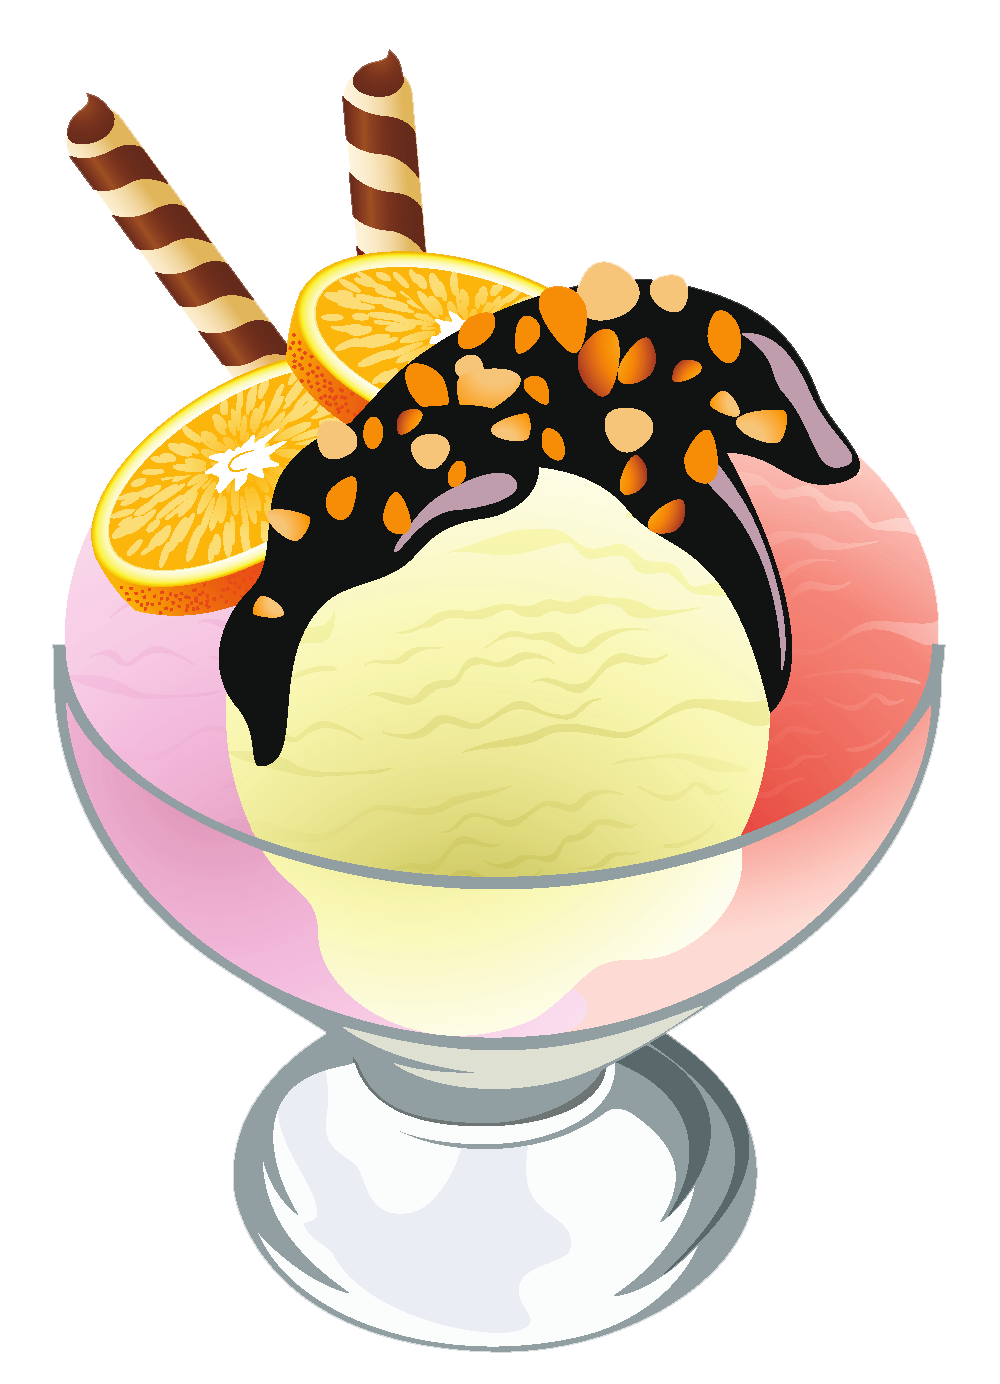 Doughnut clipart sugary food. Ice cream sundae transparent